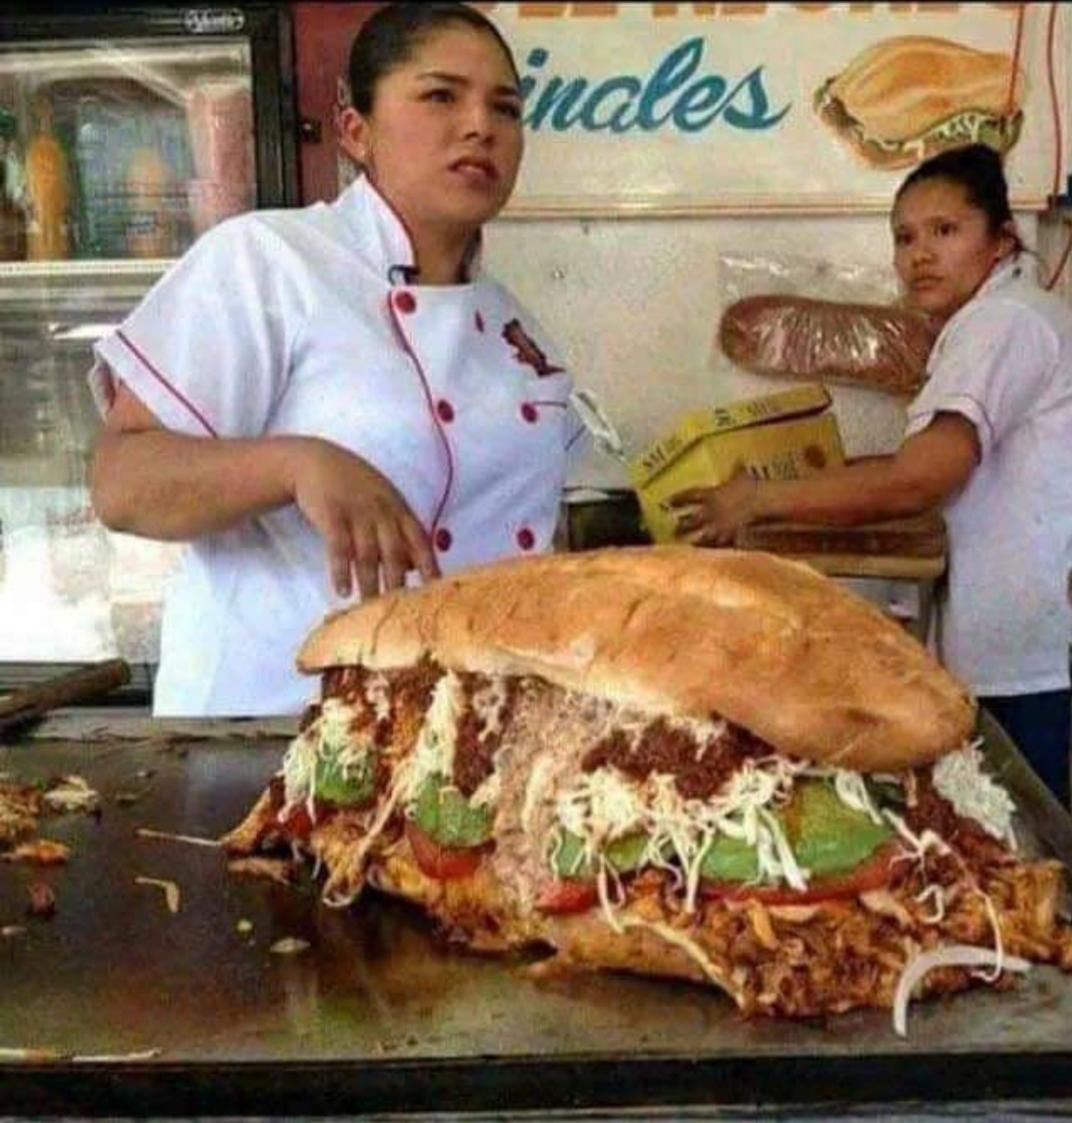 And a diet Coke please..